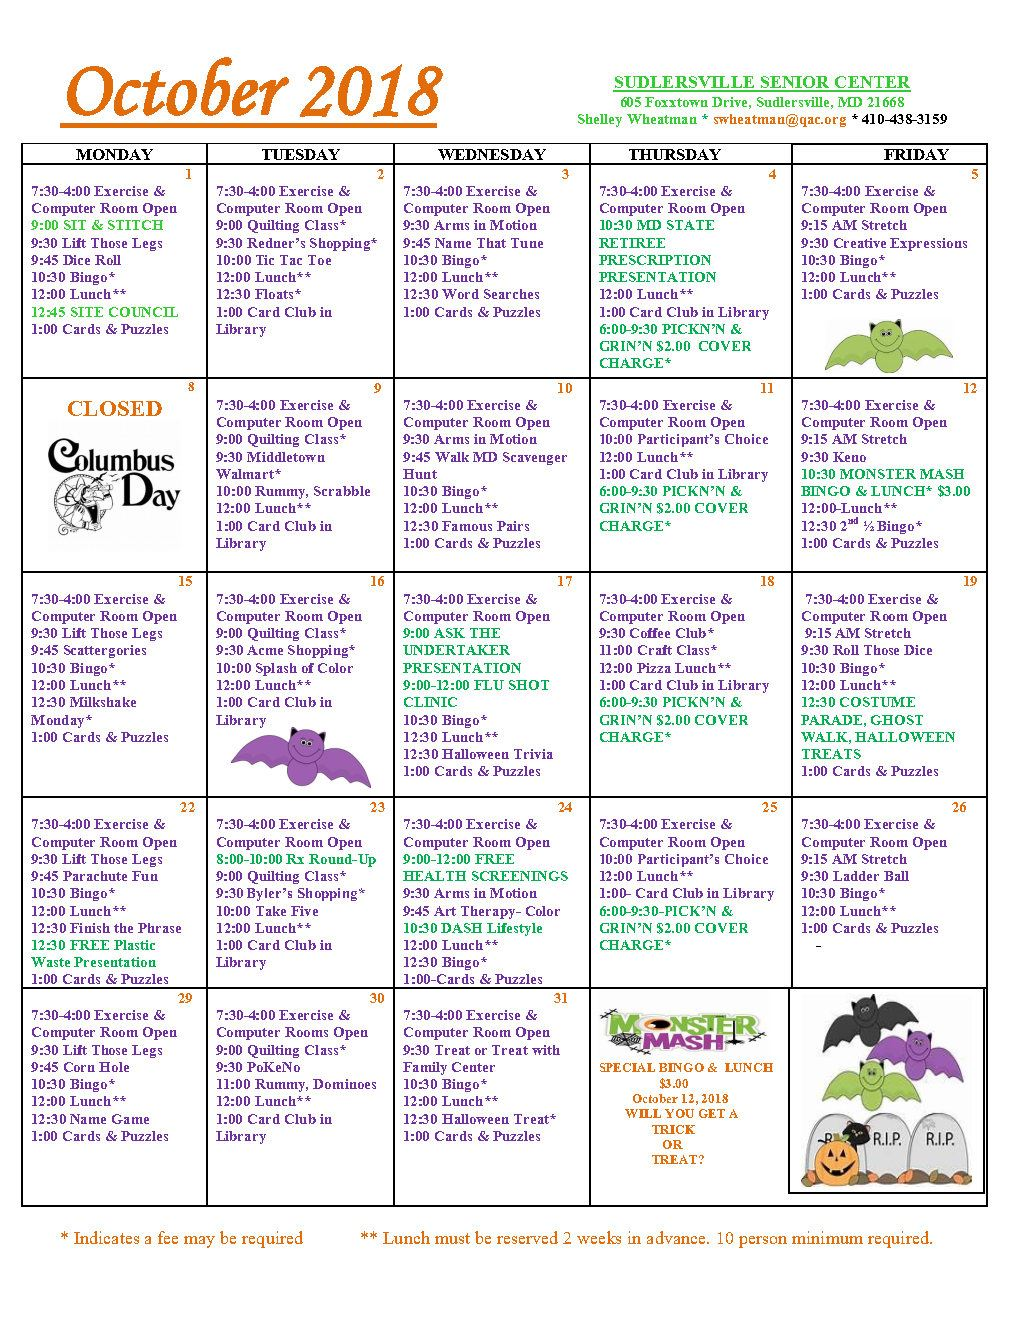 Sudlersville October Calendar